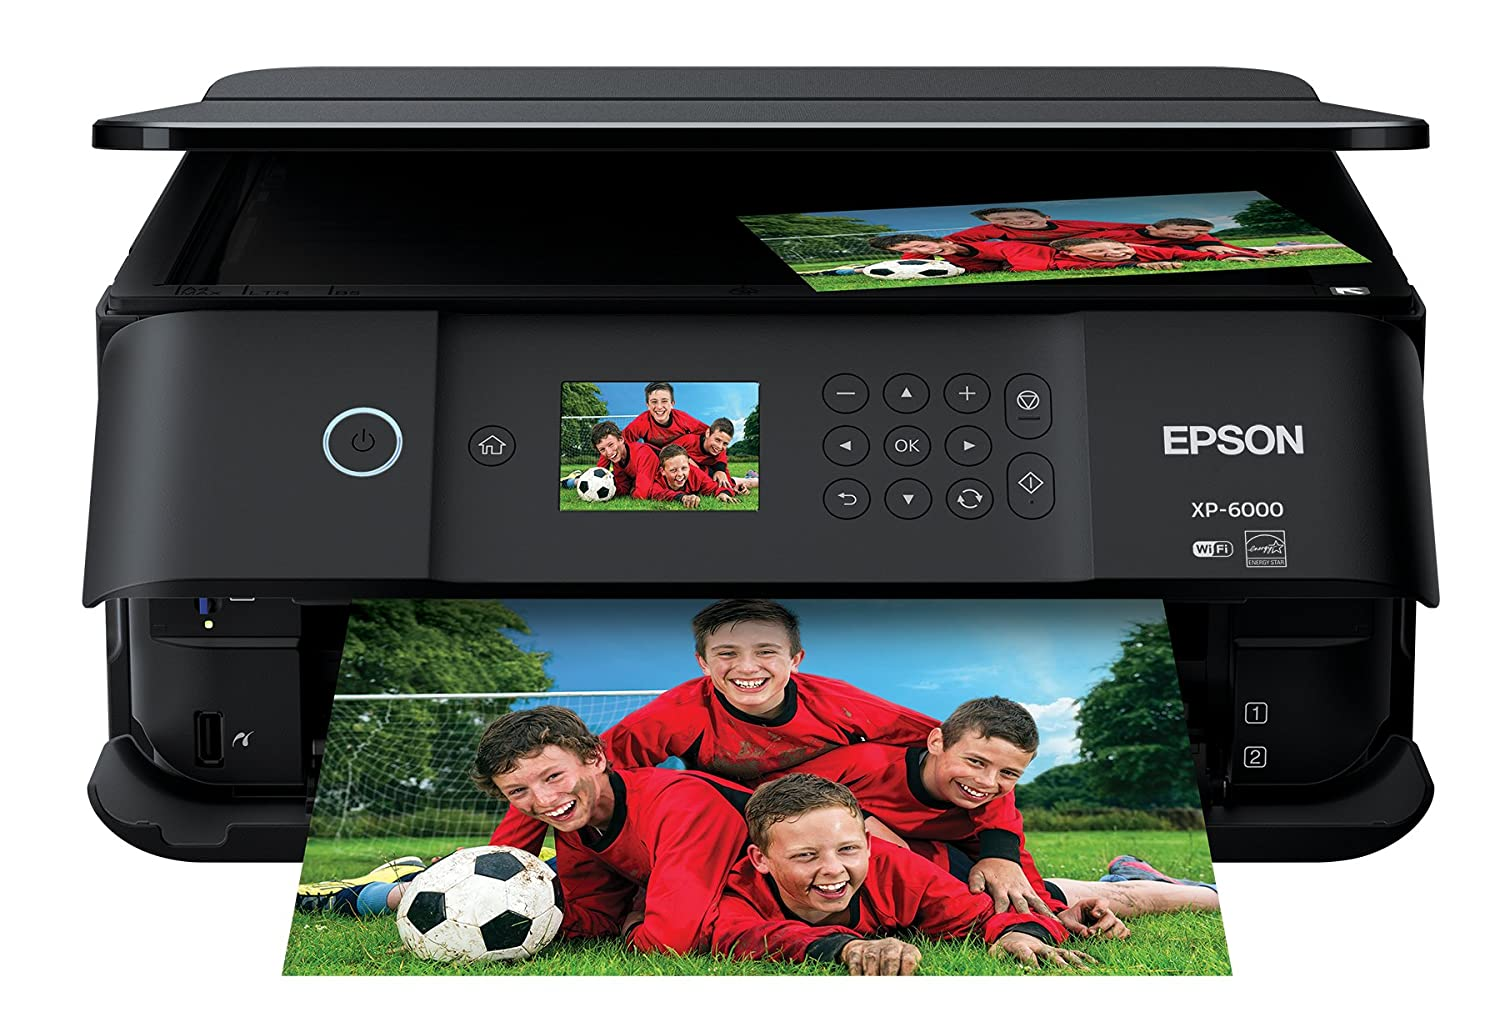 Save 53% on Epson Wireless Color Printer ONLY $69.99 (Reg. $150)